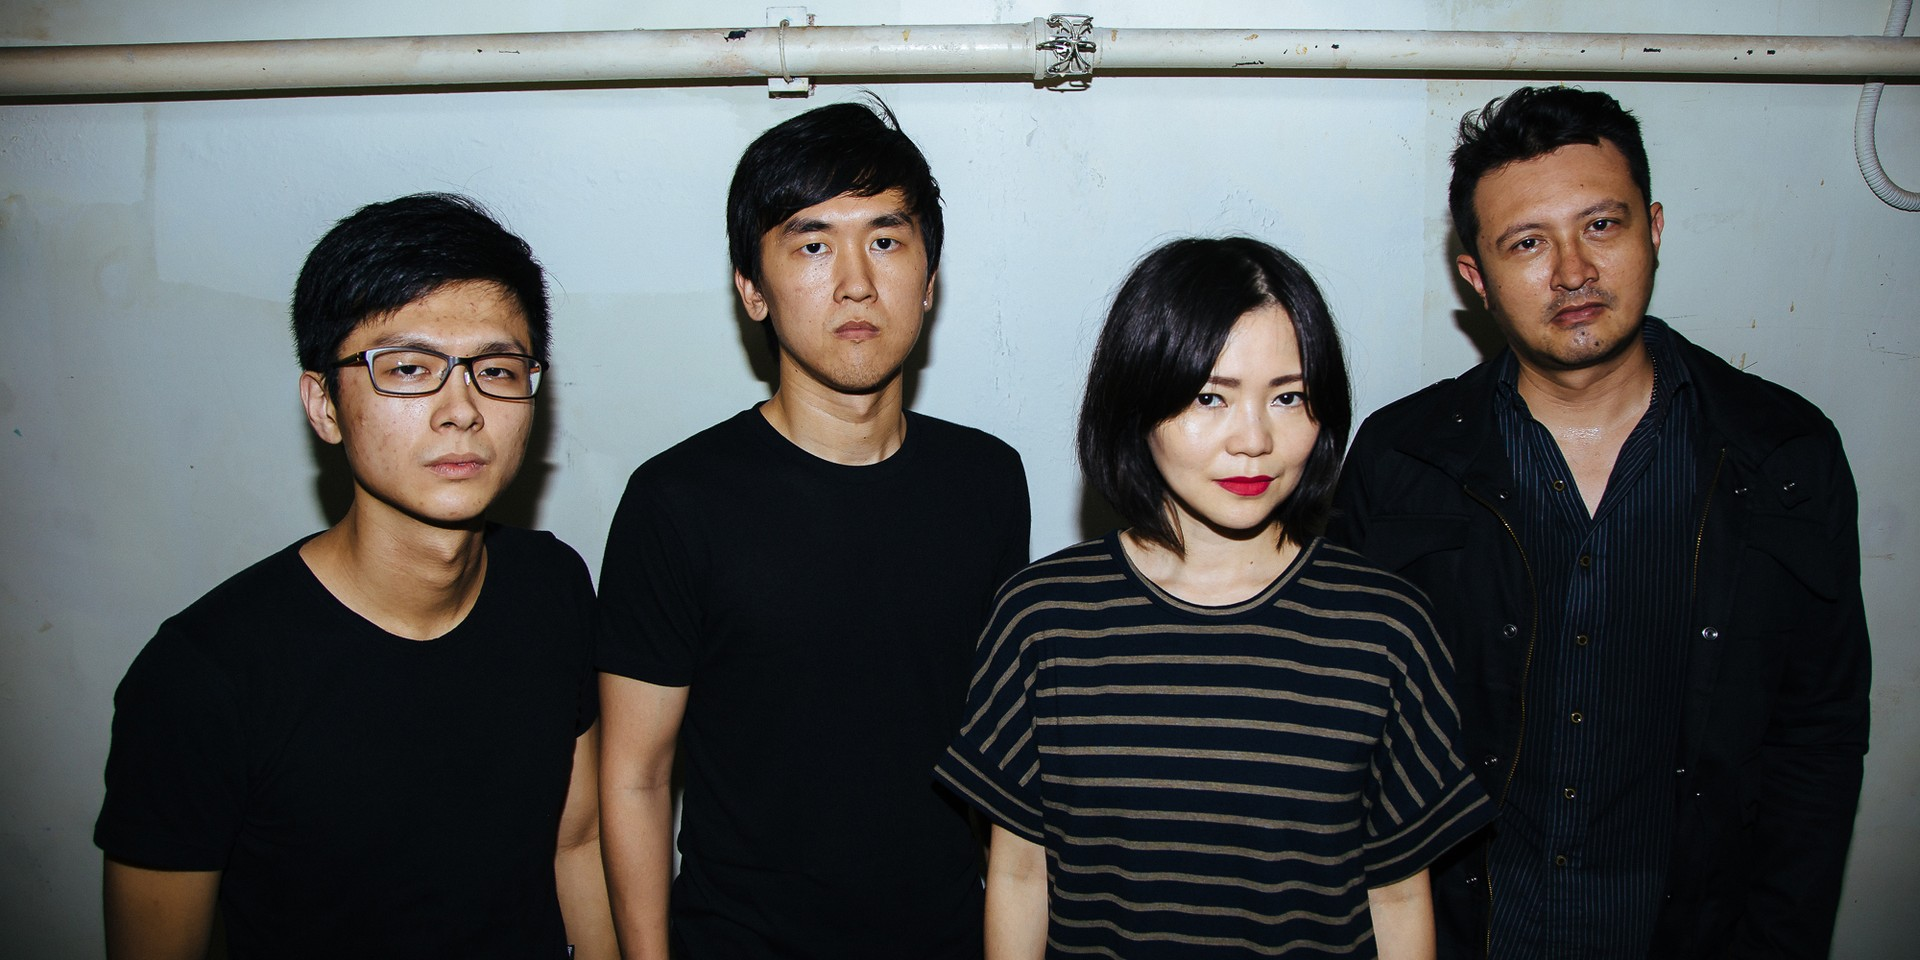 LISTEN: Astreal's impenetrable 'Colossal', their first single in years